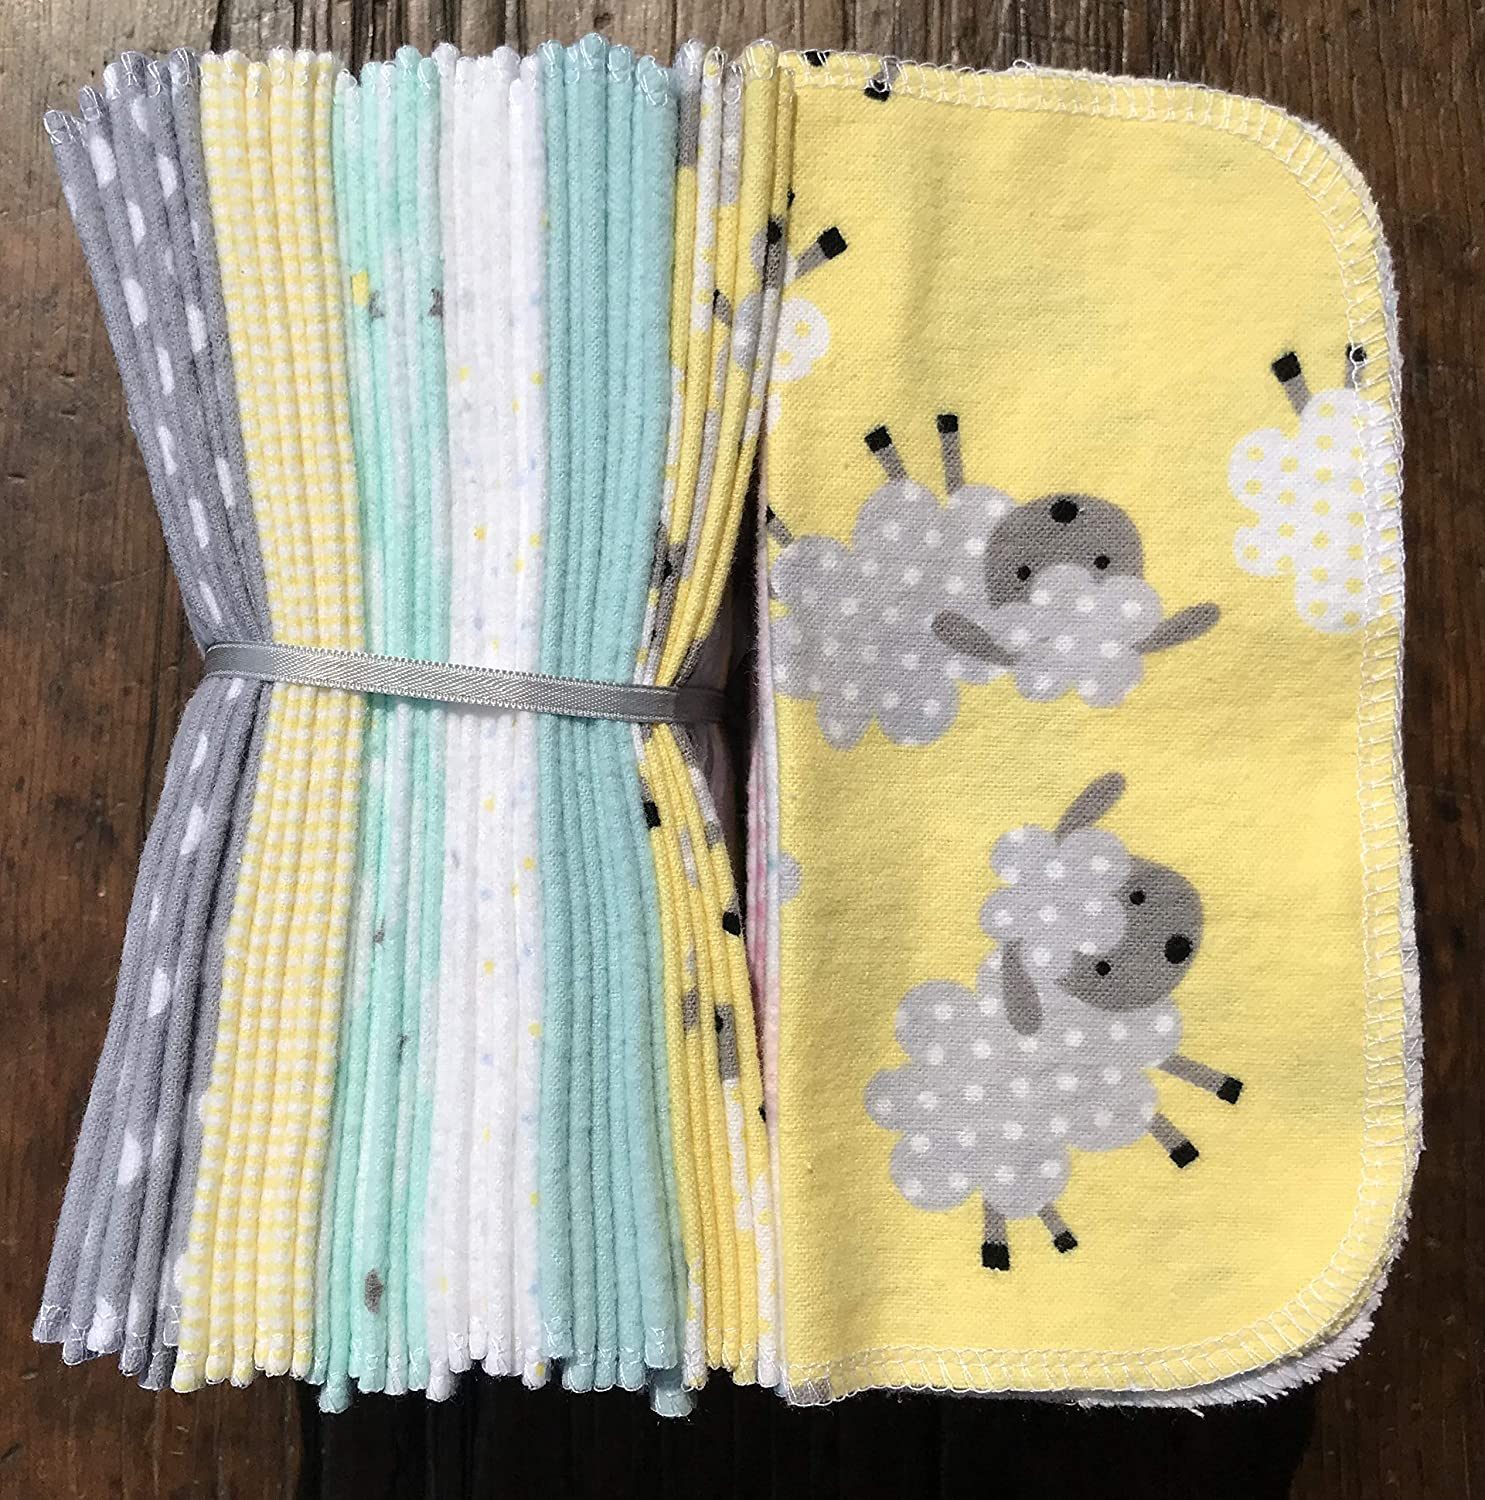 Cloth Baby Wipes Starter Kit. Set of 3 Dozen Wipes. Reusable Cloth Wipes. Baby Shower Gift. Eco Friendly. Reusable Cloth Napkin. Reusable Dryer Sheets. Now I Lay Me Down To Sheep